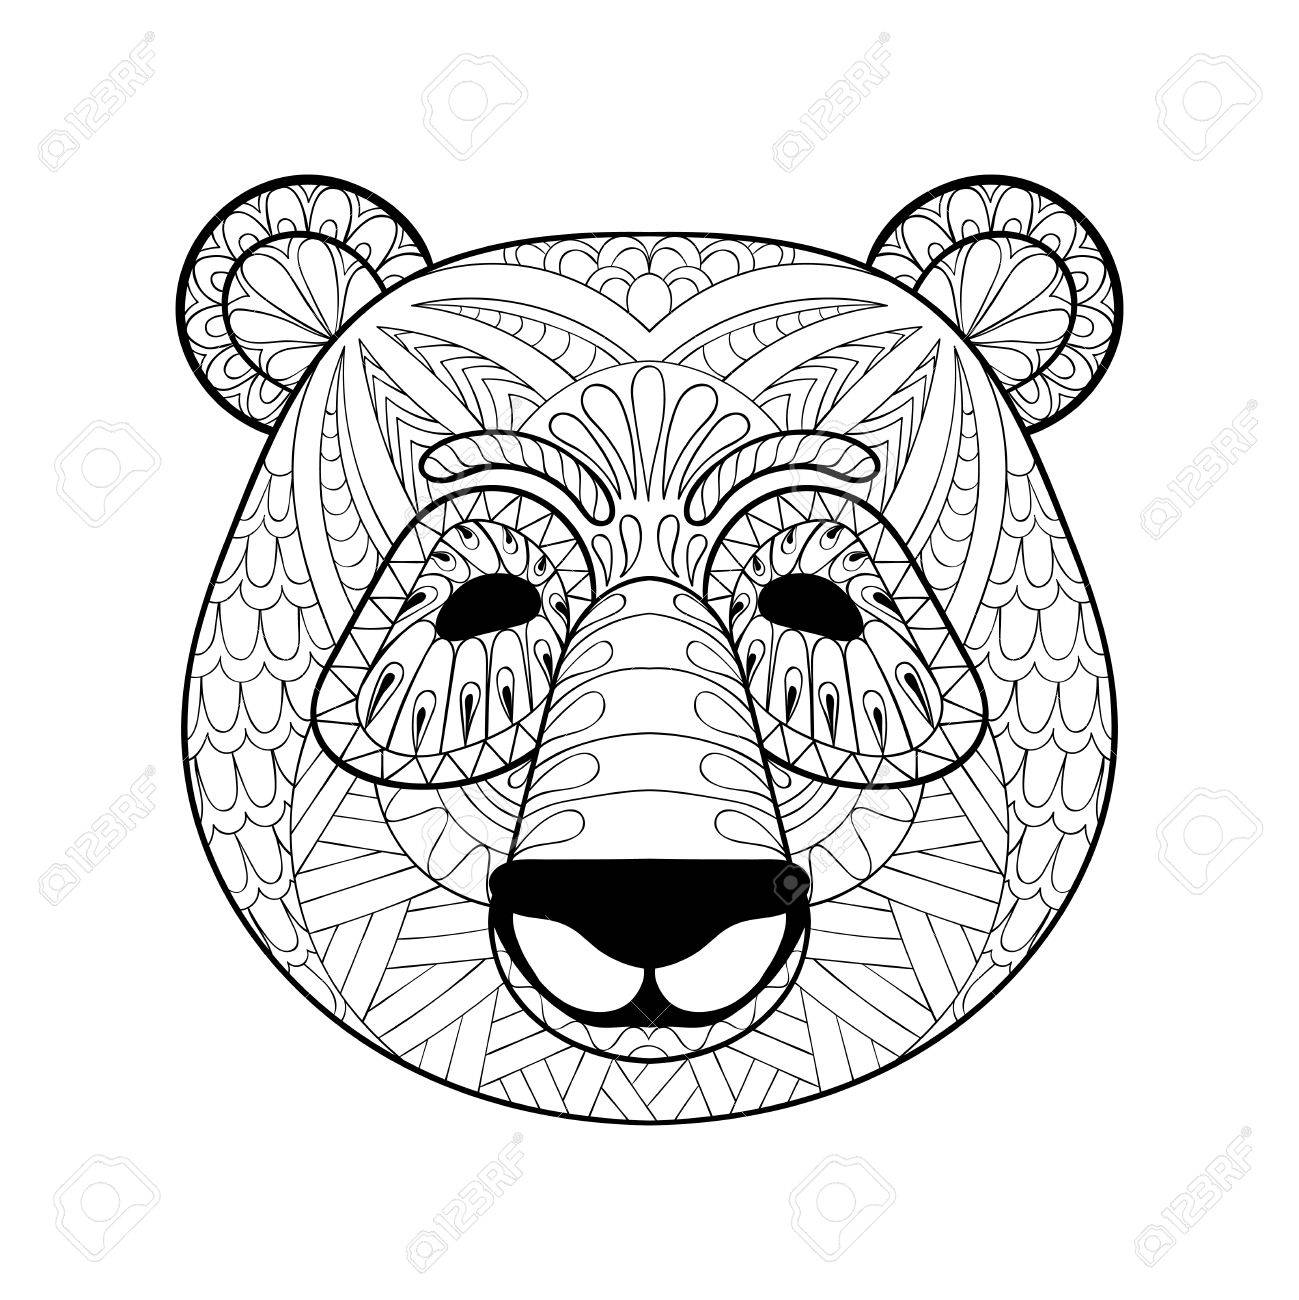 Head Of Panda In Style Freehand Sketch For Adult Antistress Coloring Page With Doodle Elements